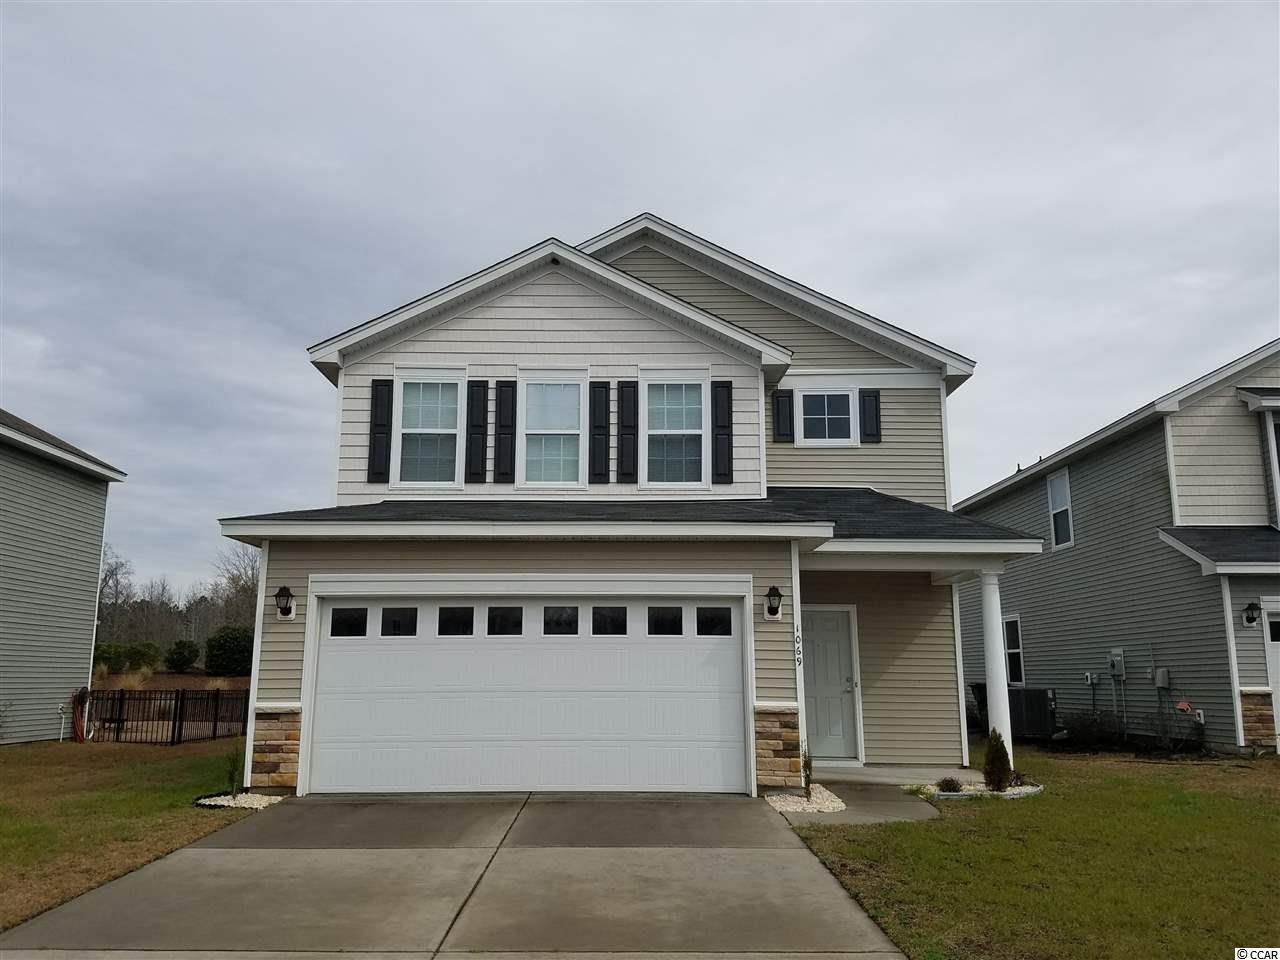 GREAT Price !!! Beautiful 4 Bedroom 3 Full Bath Home Located in Desirable Berkshire Forest Community. A lot of Xtras, Fantastic Open Kitchen with Granite Countertops, Recessed Lighting, Crown Moulding, All New Appliances, New Laminate Floors throughout the First Floor. Remodeled Bathrooms with New Tile Floors, New Vanities and Lighting. New Carpet in Bedrooms throughout the whole Home With 2.5 inch Blinds. New Lighting in the Living and Kitchen Area. Huge 15x18 Loft Area to Relax or have Fun. Extended Driveway can accommodate up to 6 cars and an Attached 2 Car Garage. Home Warranty Provided by the Seller ! Community Pool and More. Amenities Include Oceanfront Beach Cabana, Clubhouse overlooking silver Lake, Sandy Beach Area, Pool, Hot Tub, Meeting Room, Outdoor/Indoor Restrooms, Kitchen, Fitness Center, Outdoor Fireplace, Walking Trail, Jungle Gym, Gazebo, Picnic Area, Tennis, Basketball and Bocce Ball Courts. Buy with Confidence, Home Warranty included